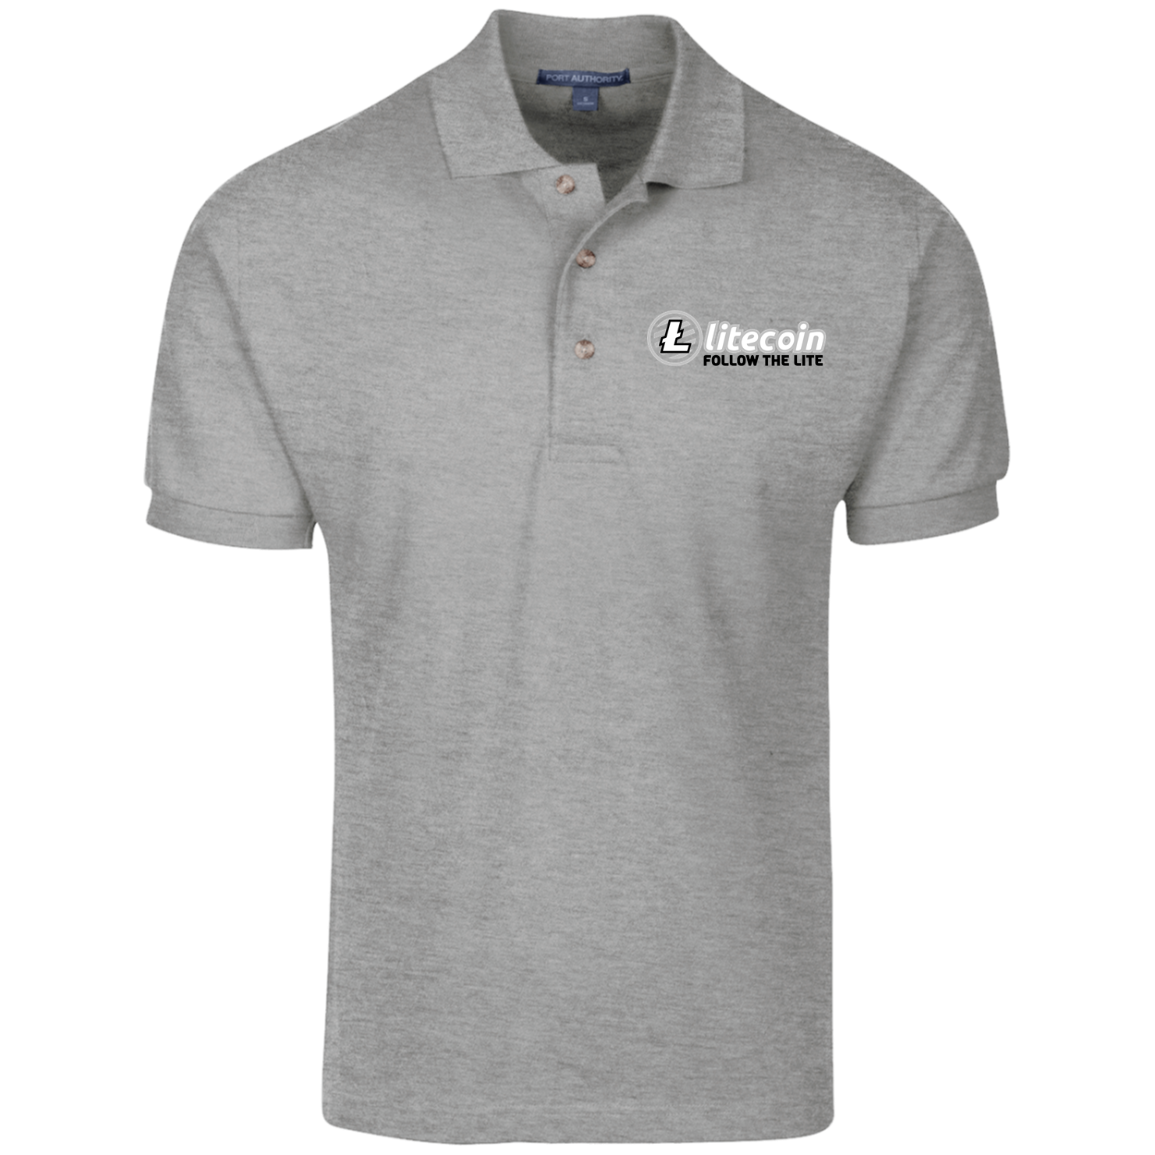 Litecoin Follow The Lite – Embroidered Cotton Polo by Port Authority